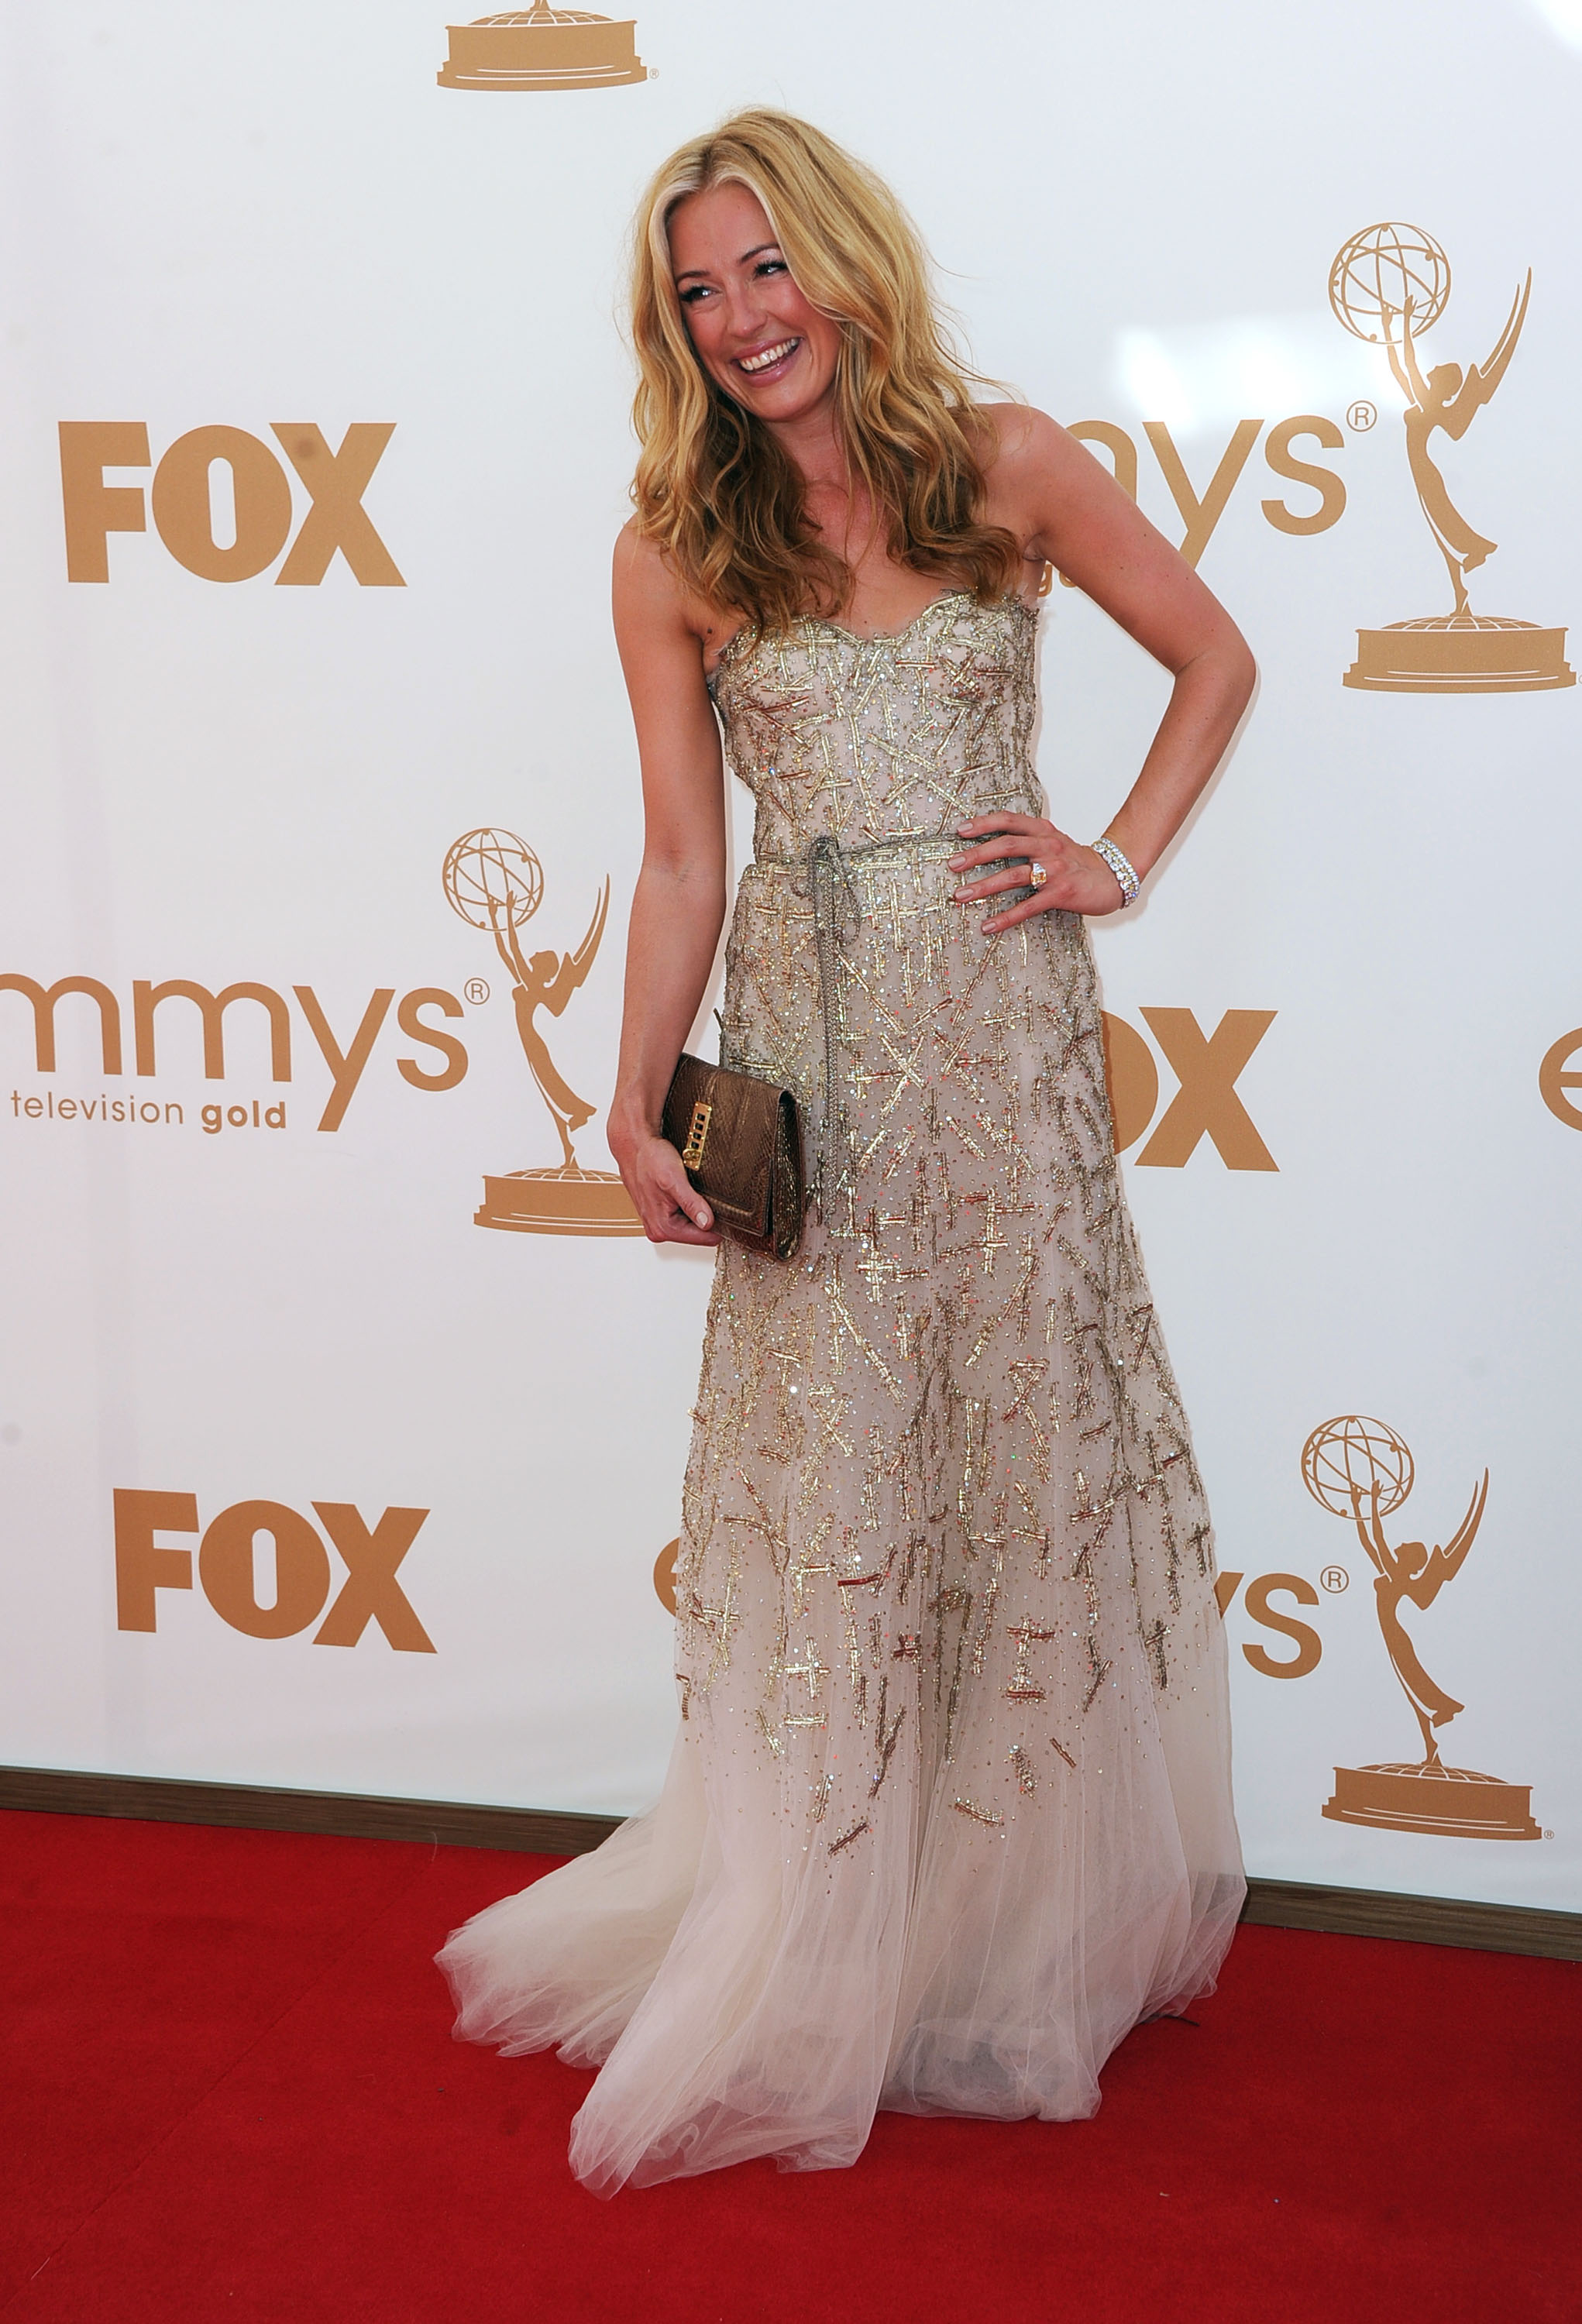 Cat Deeley at the Emmys.